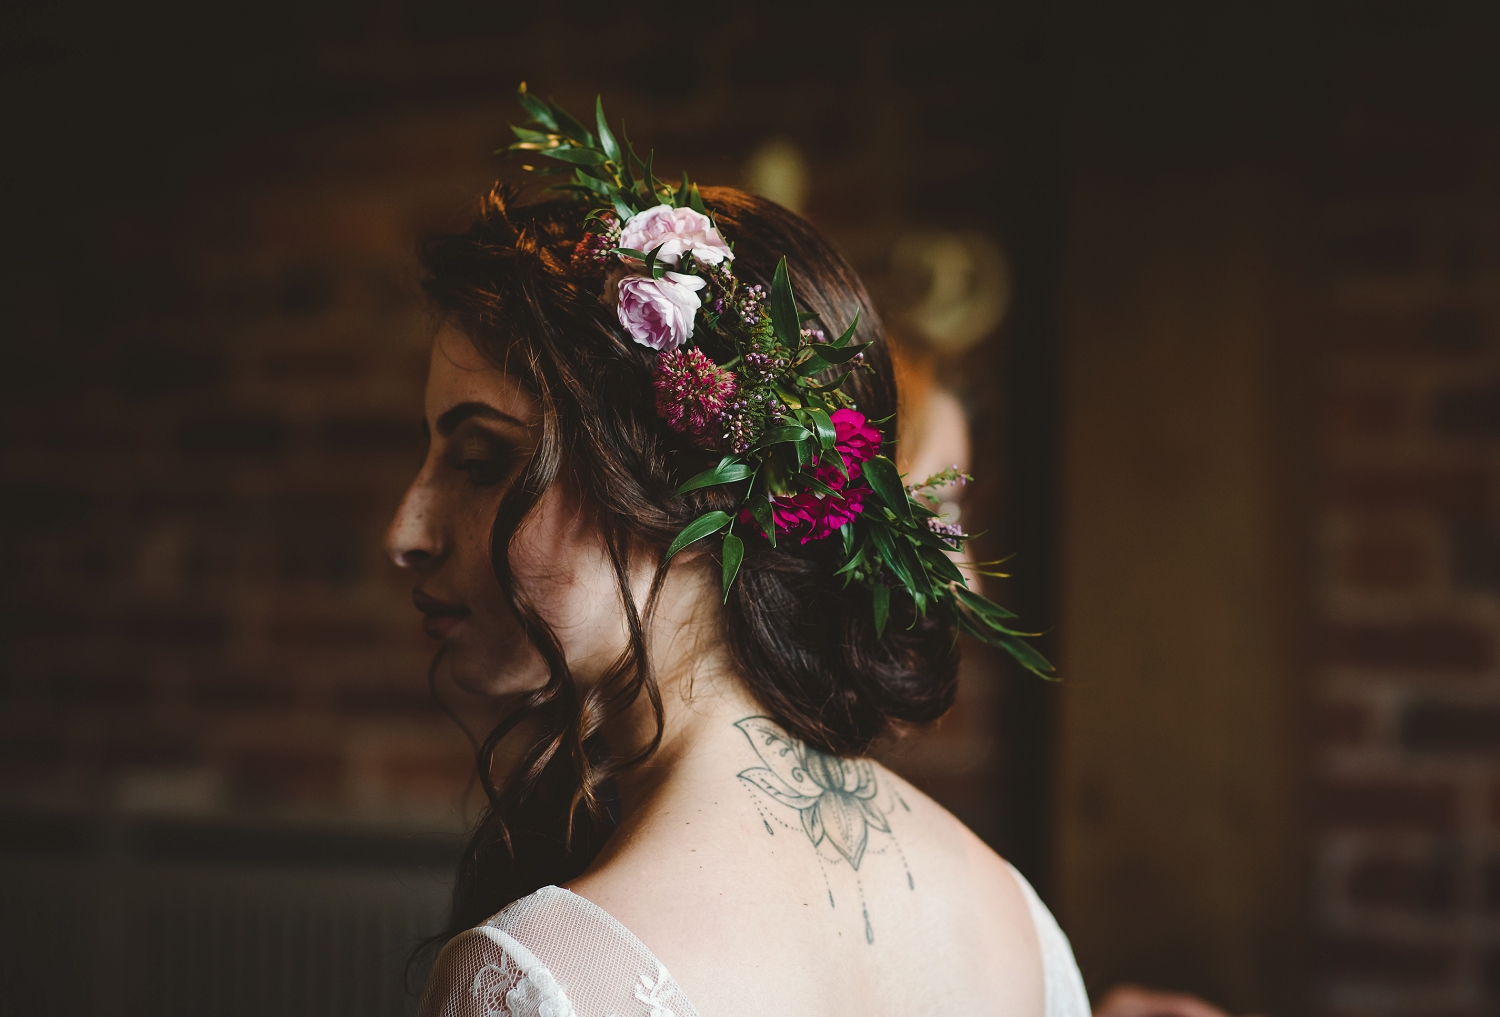 Curradine_bridal_Sept_17_amytiphoto_0036.jpg